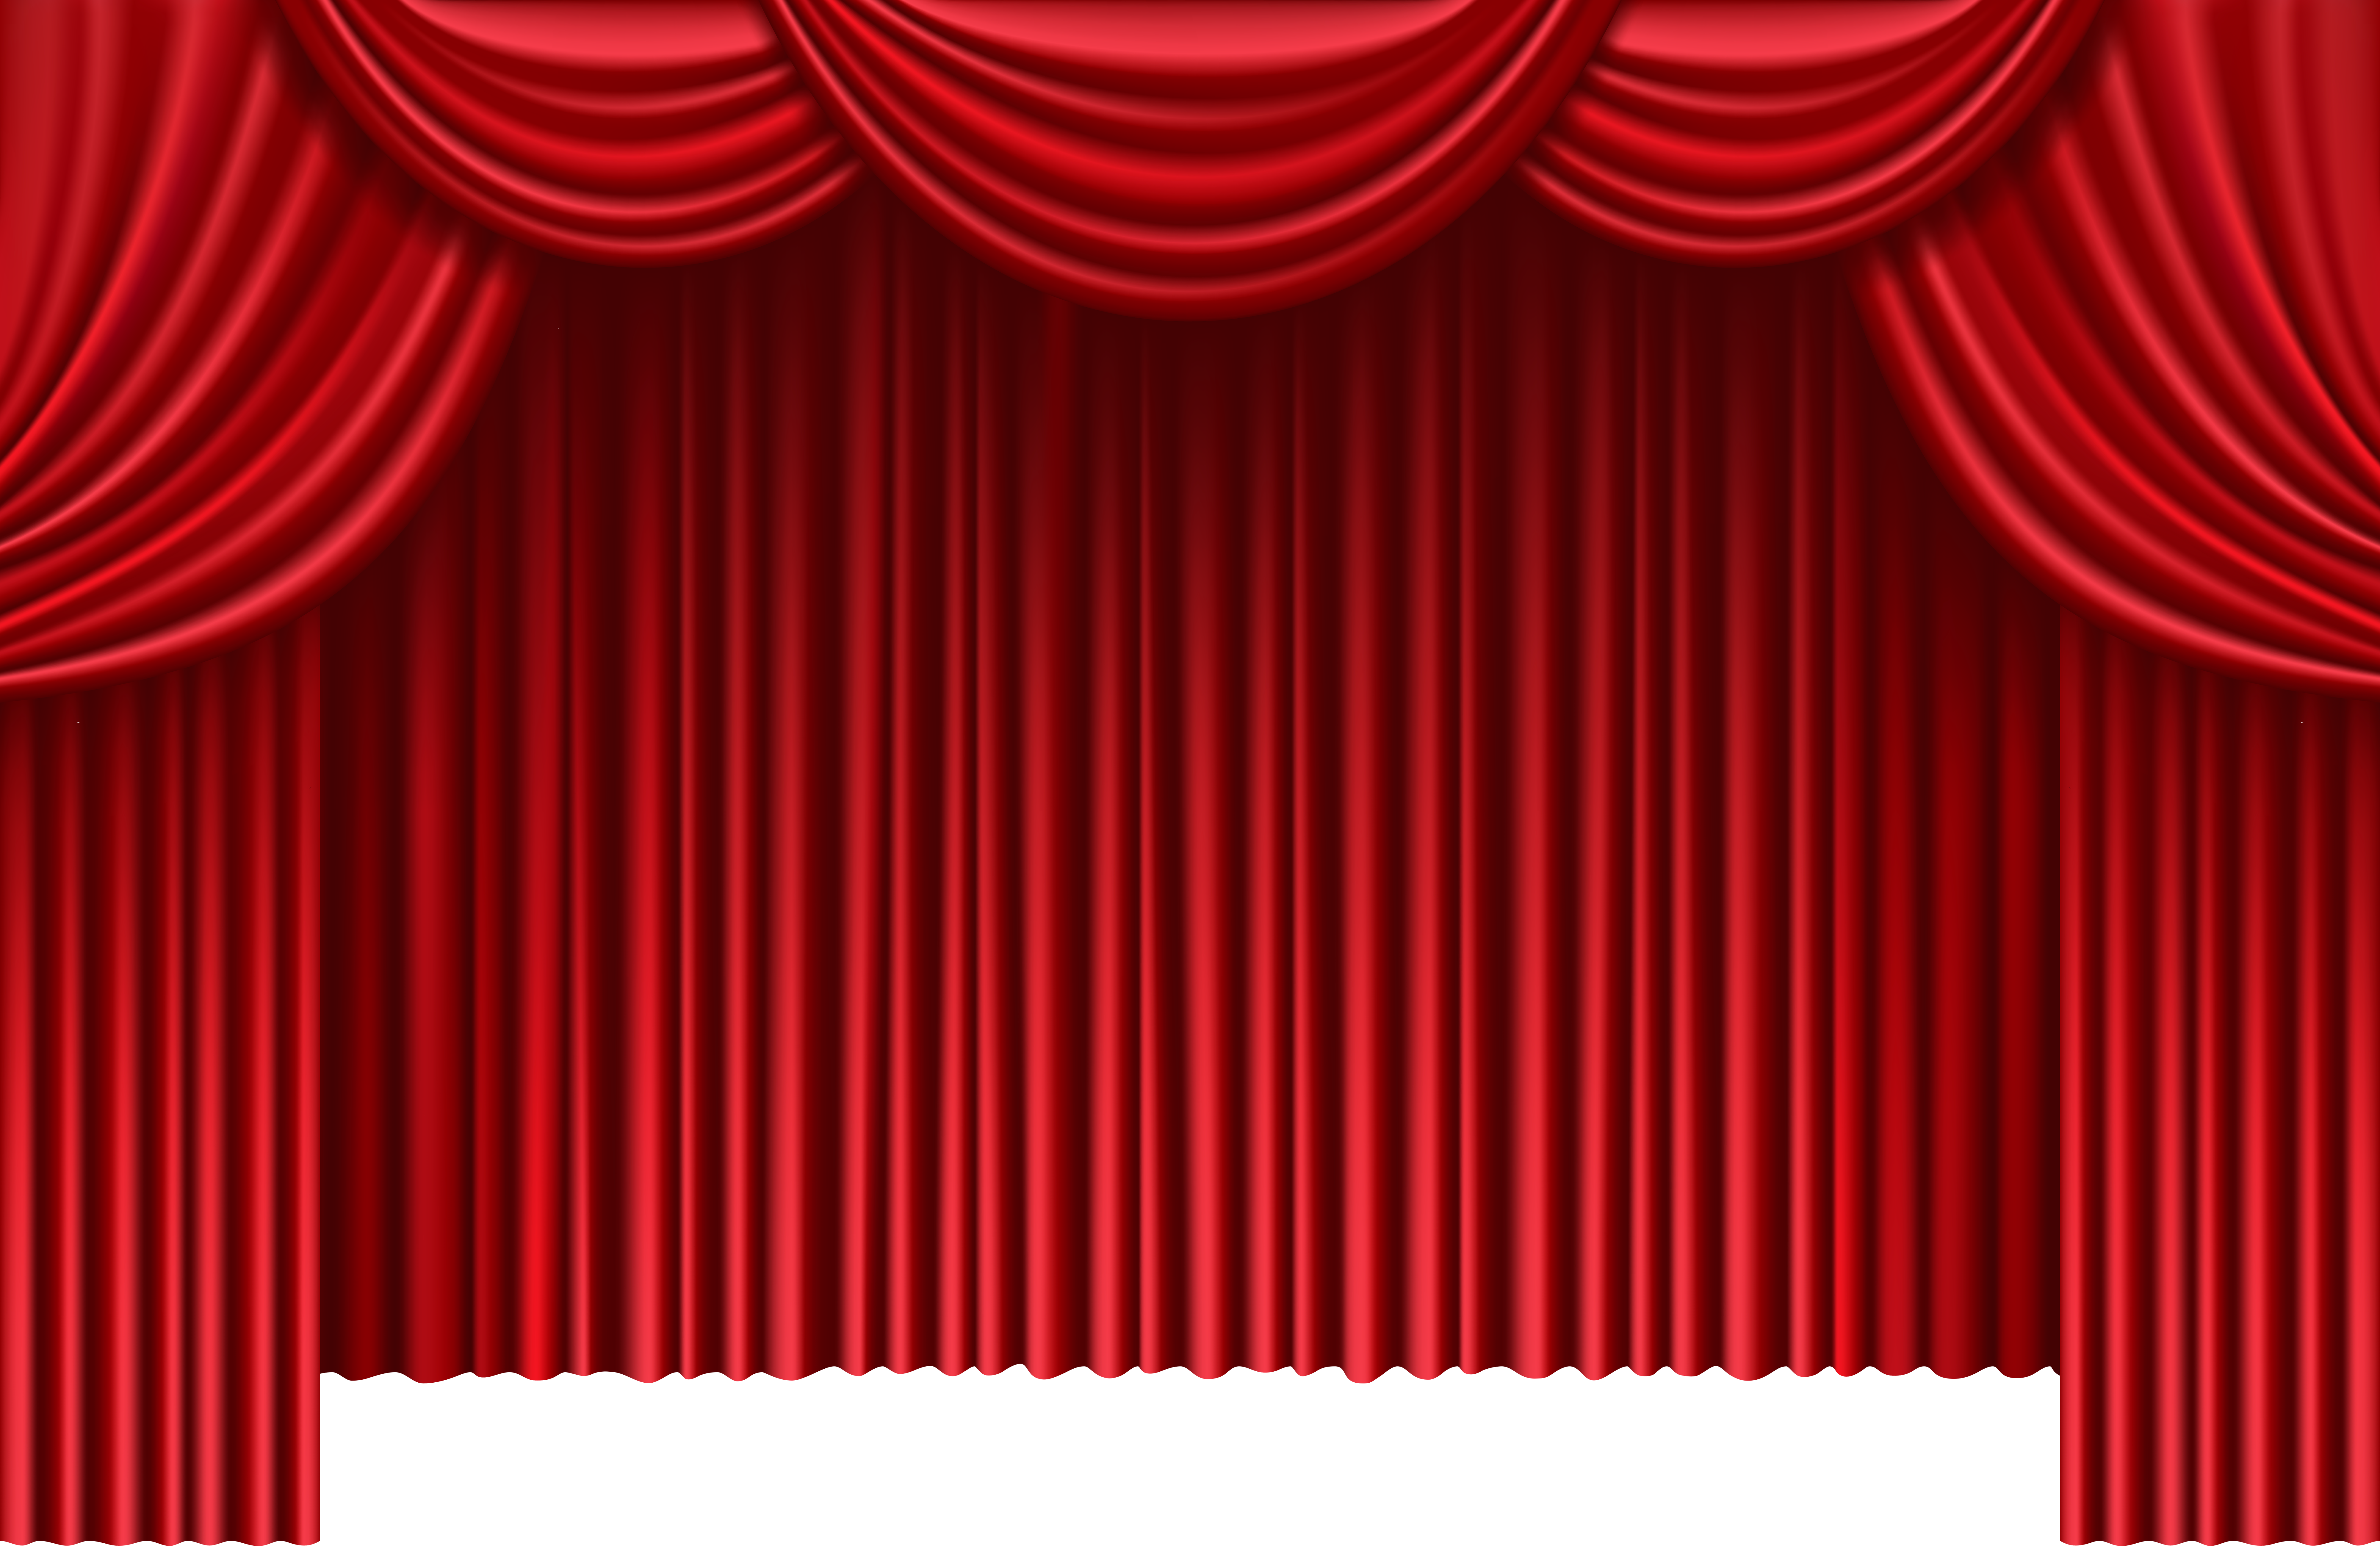 theatrical stock online stage at background with lighting architecture drapes featurepics theater image curtain dramatic grunge